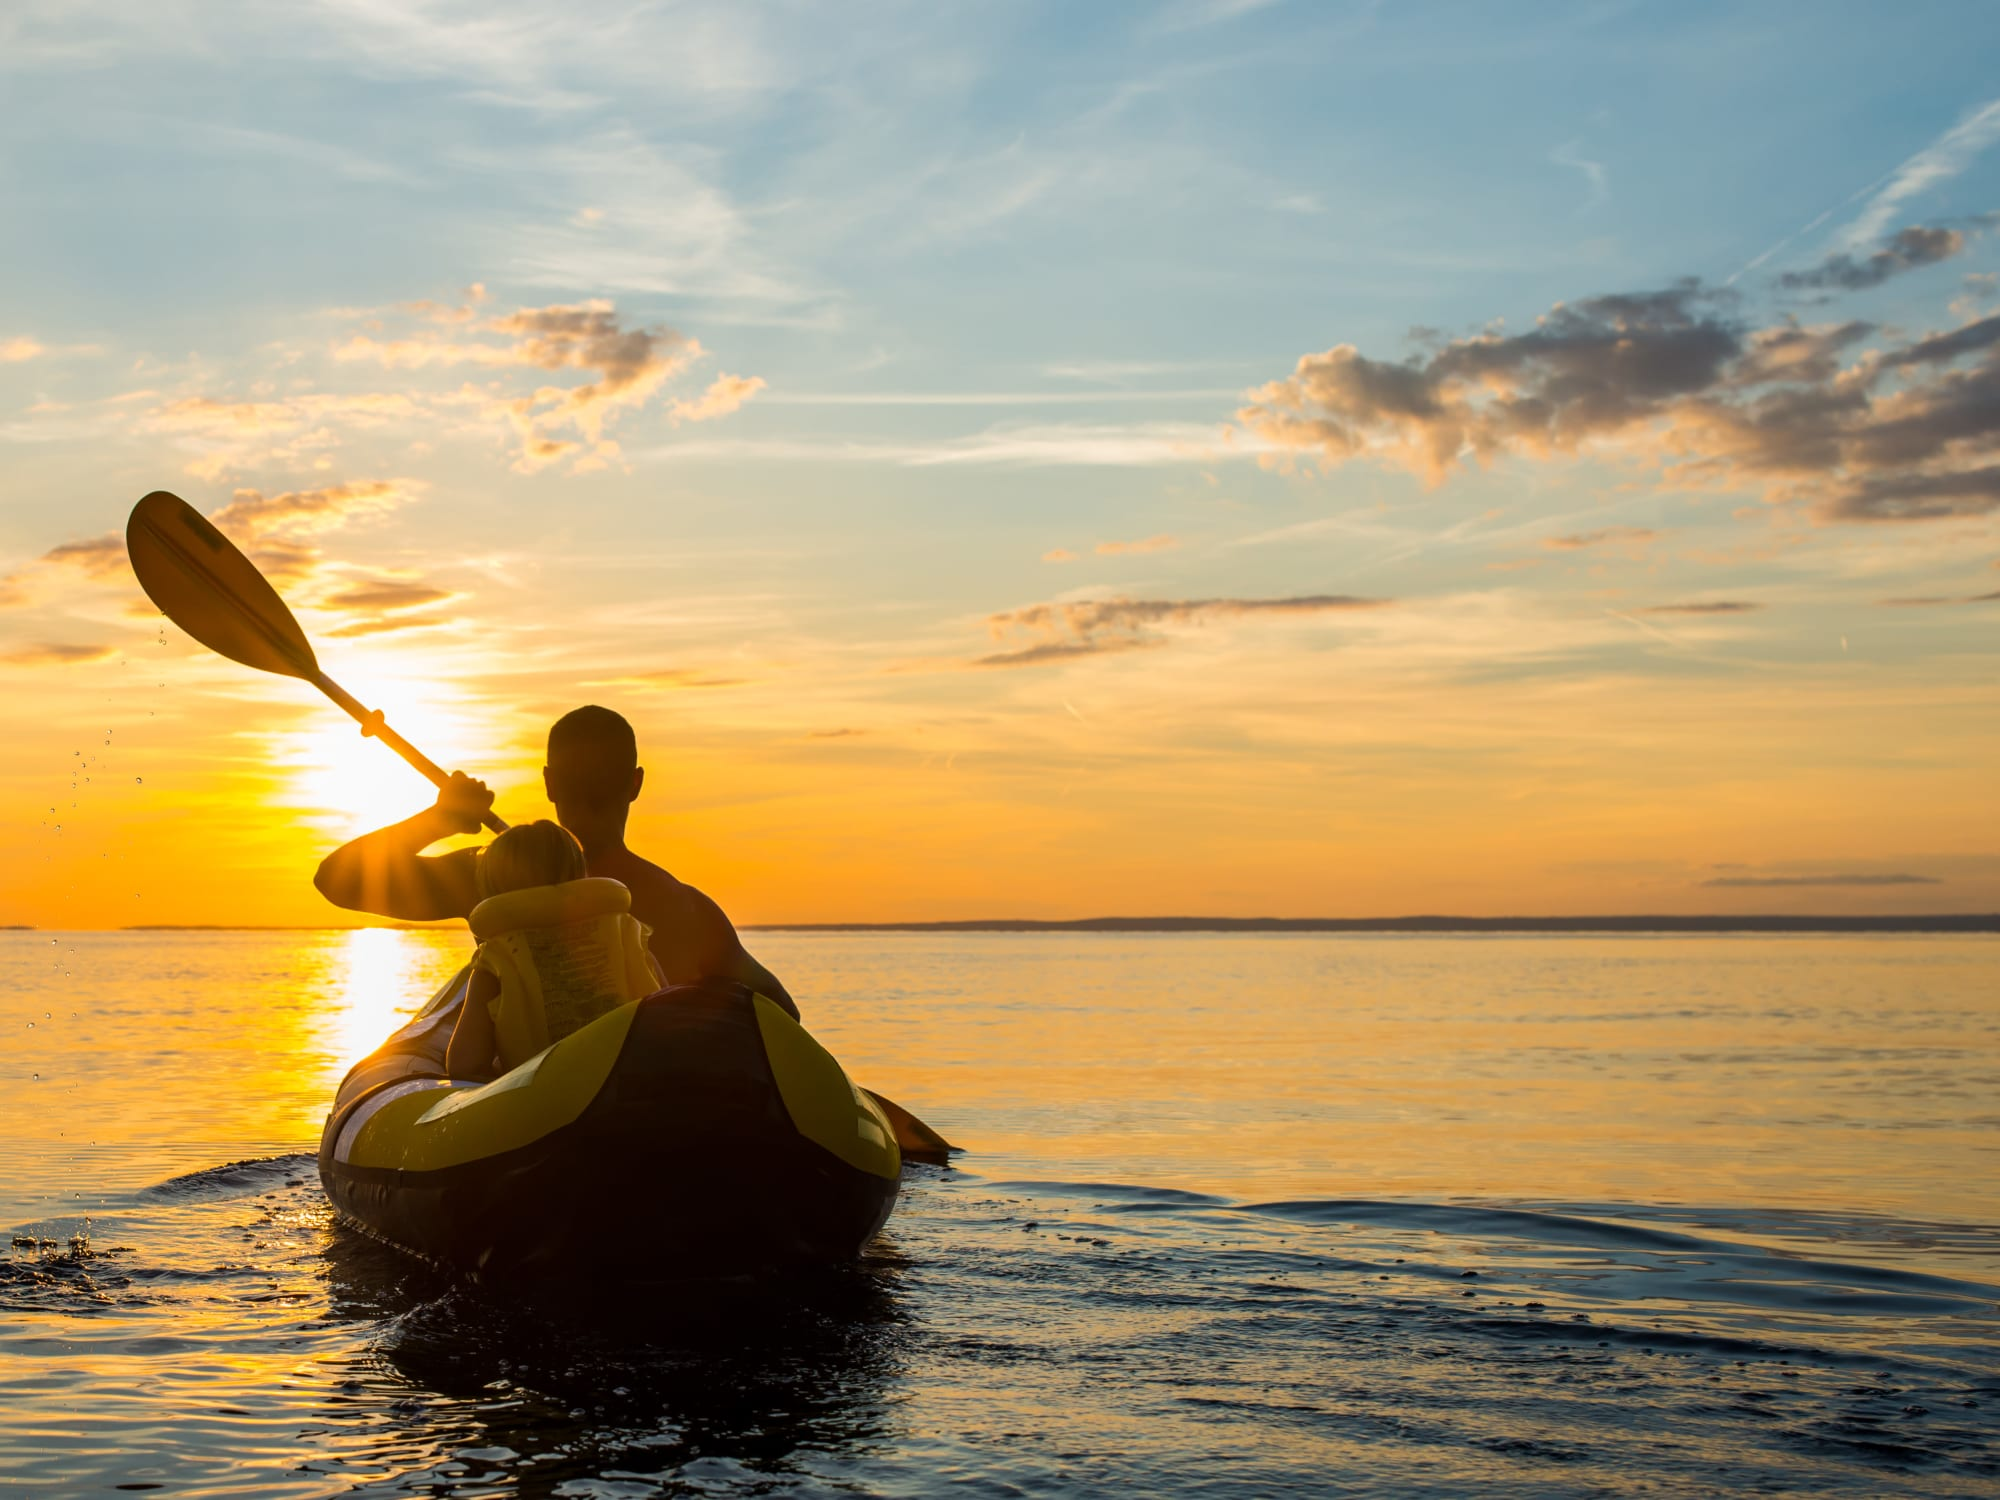 Resident father and son kayaking at sunset near Waters Edge at Marina Harbor in Marina Del Rey, California